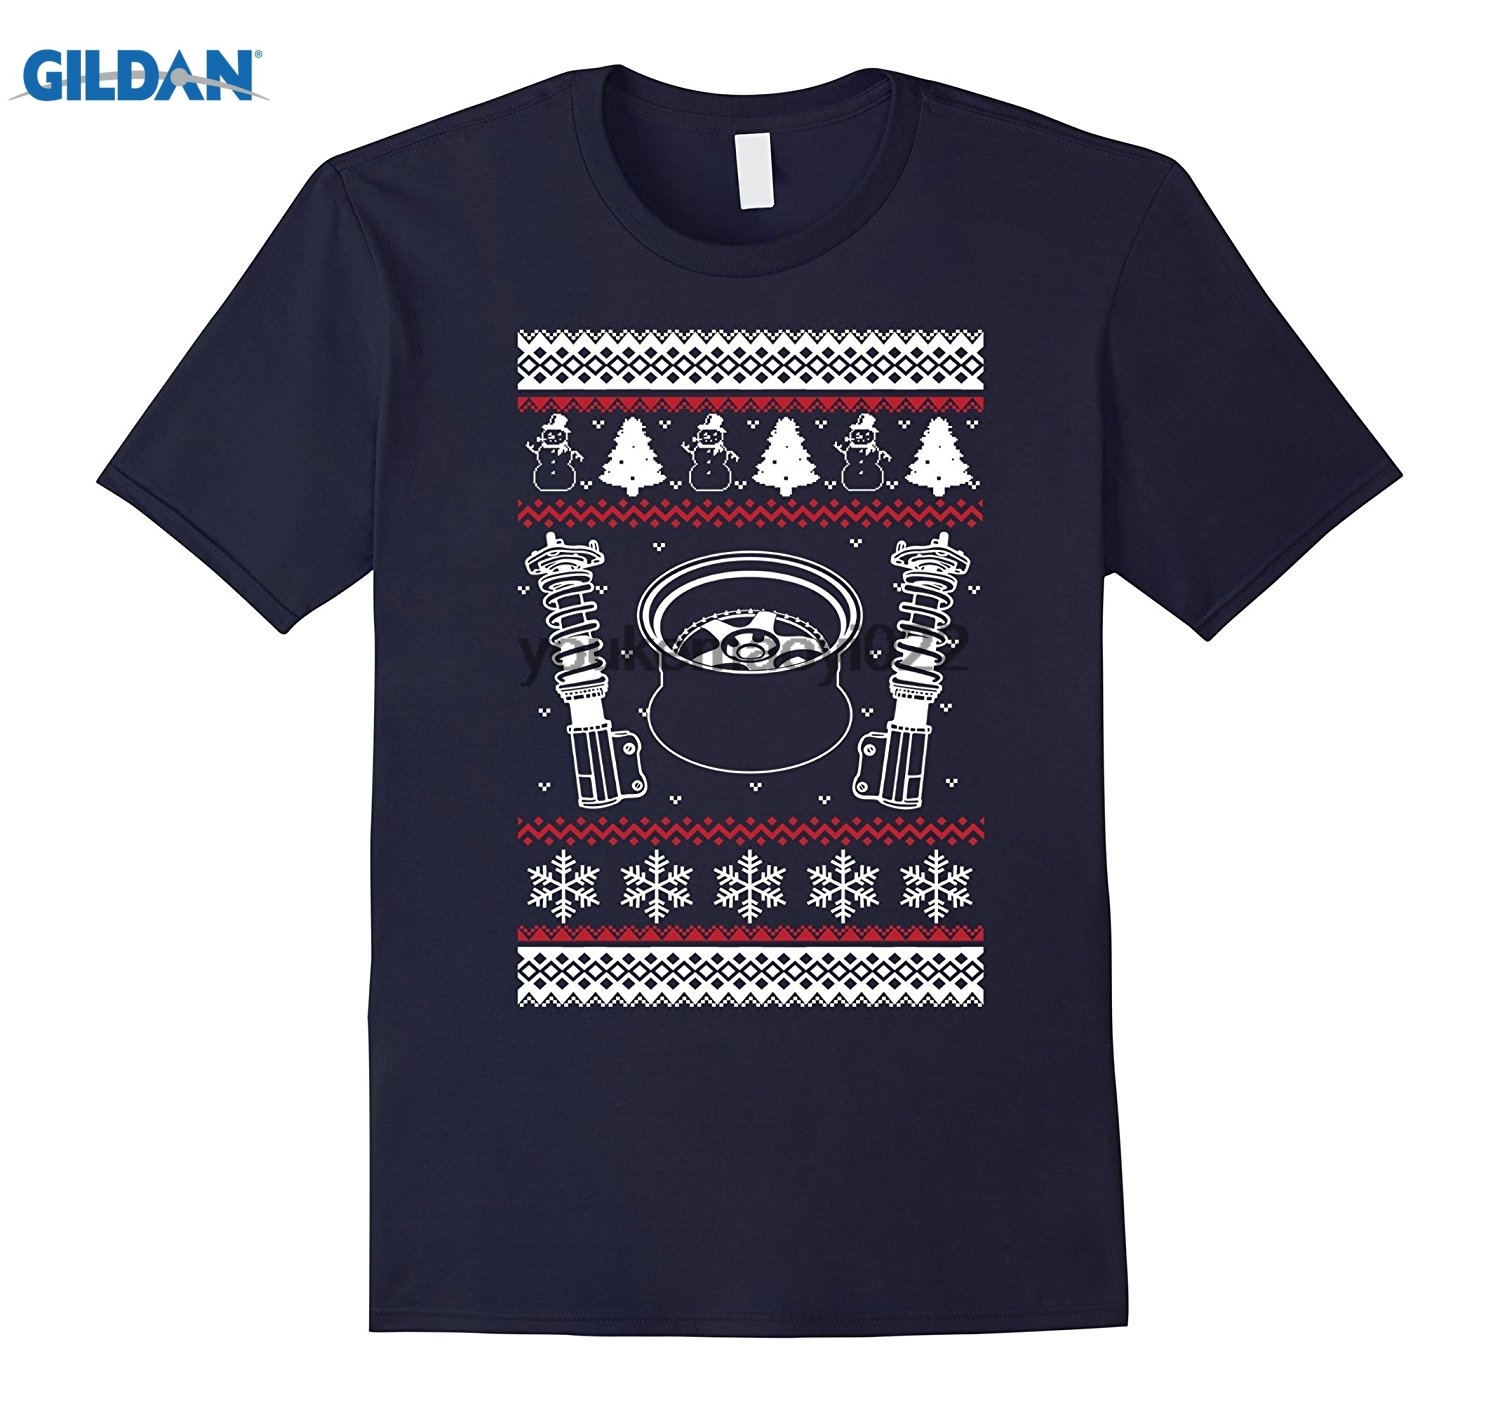 GILDAN Car Parts Ugly Christmas Sweater Style T Shirt Xmas JDM ...